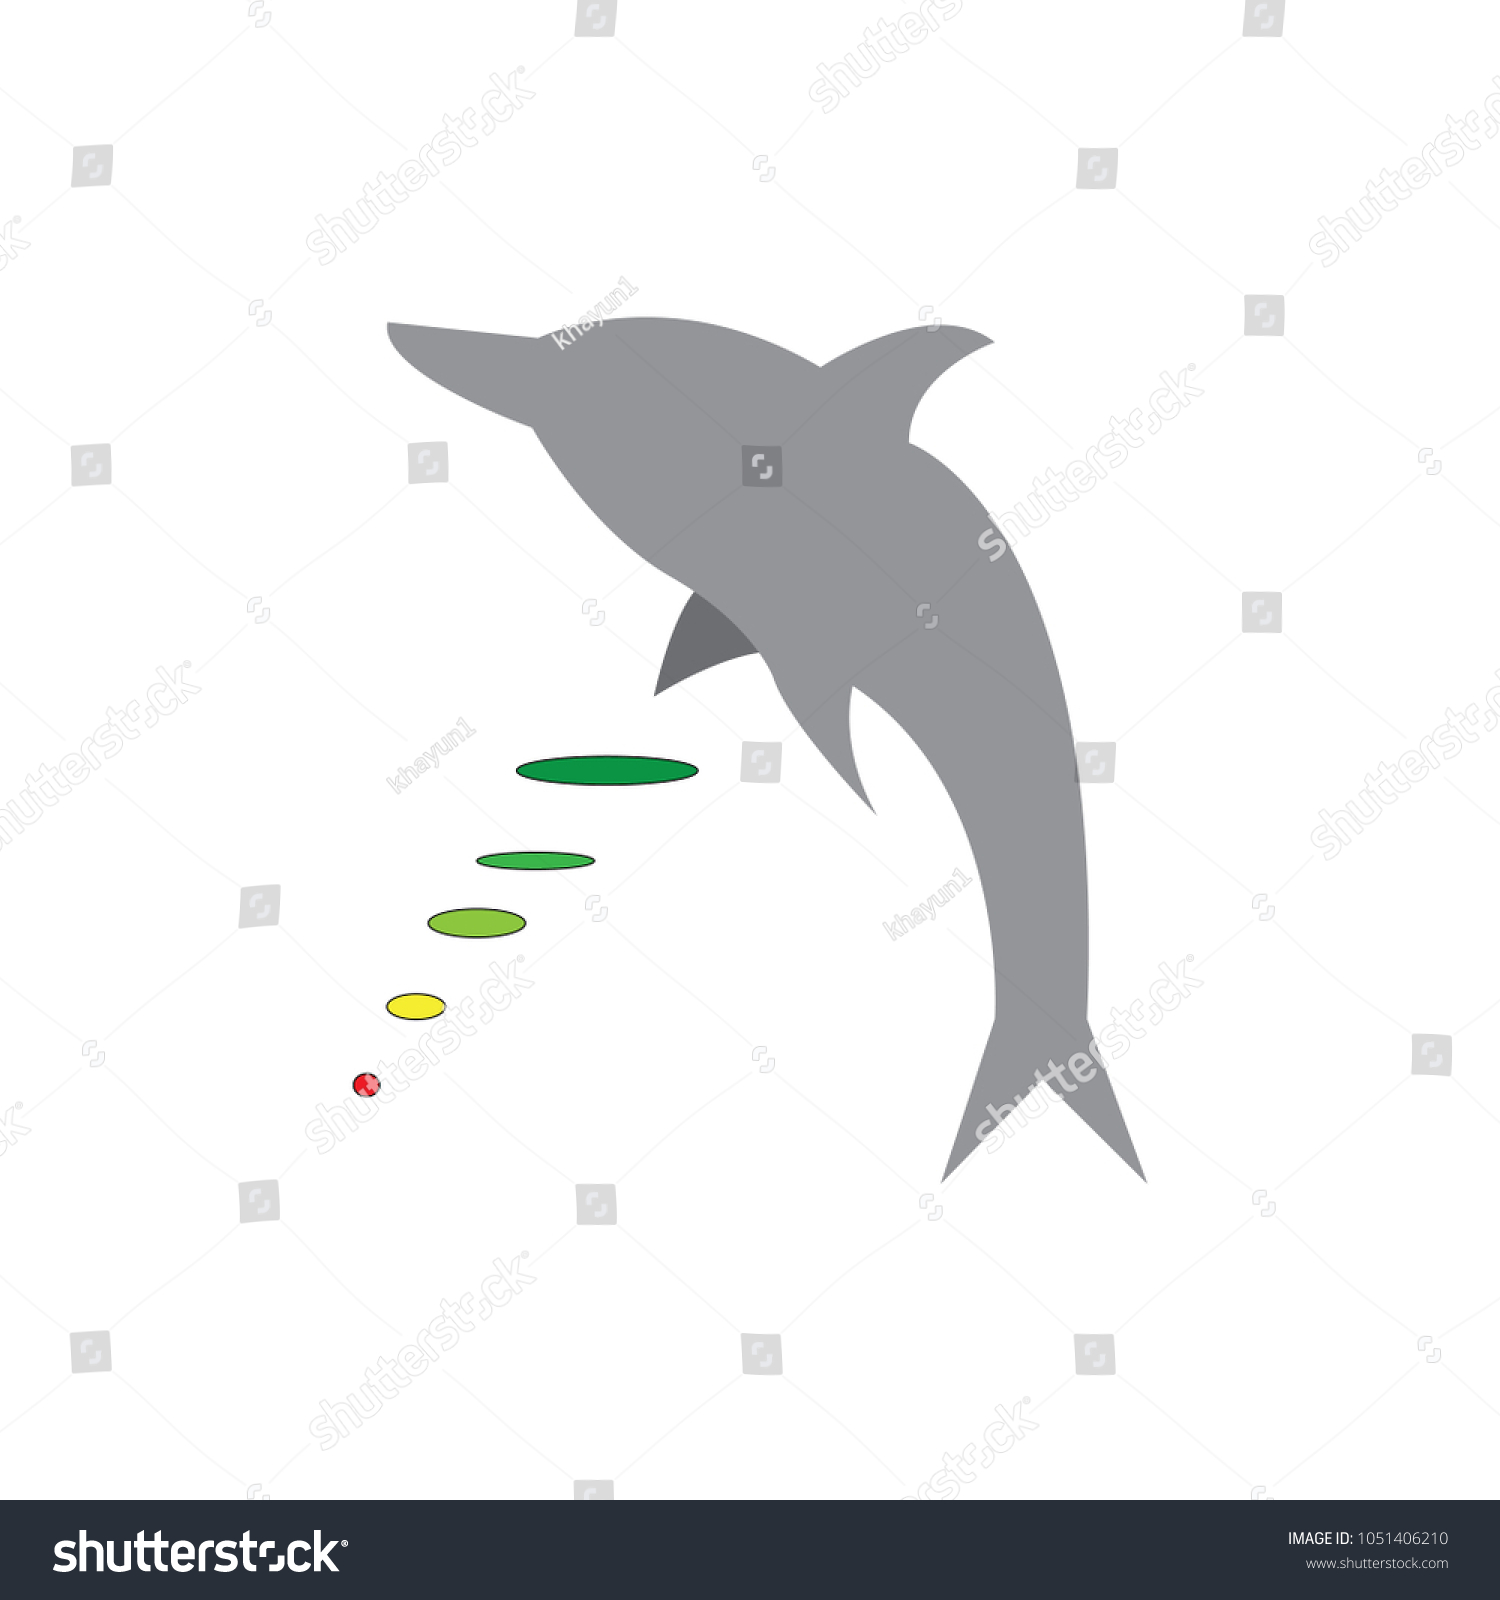 Dolphin Graphic Design Template Stock Vector (Royalty Free ...